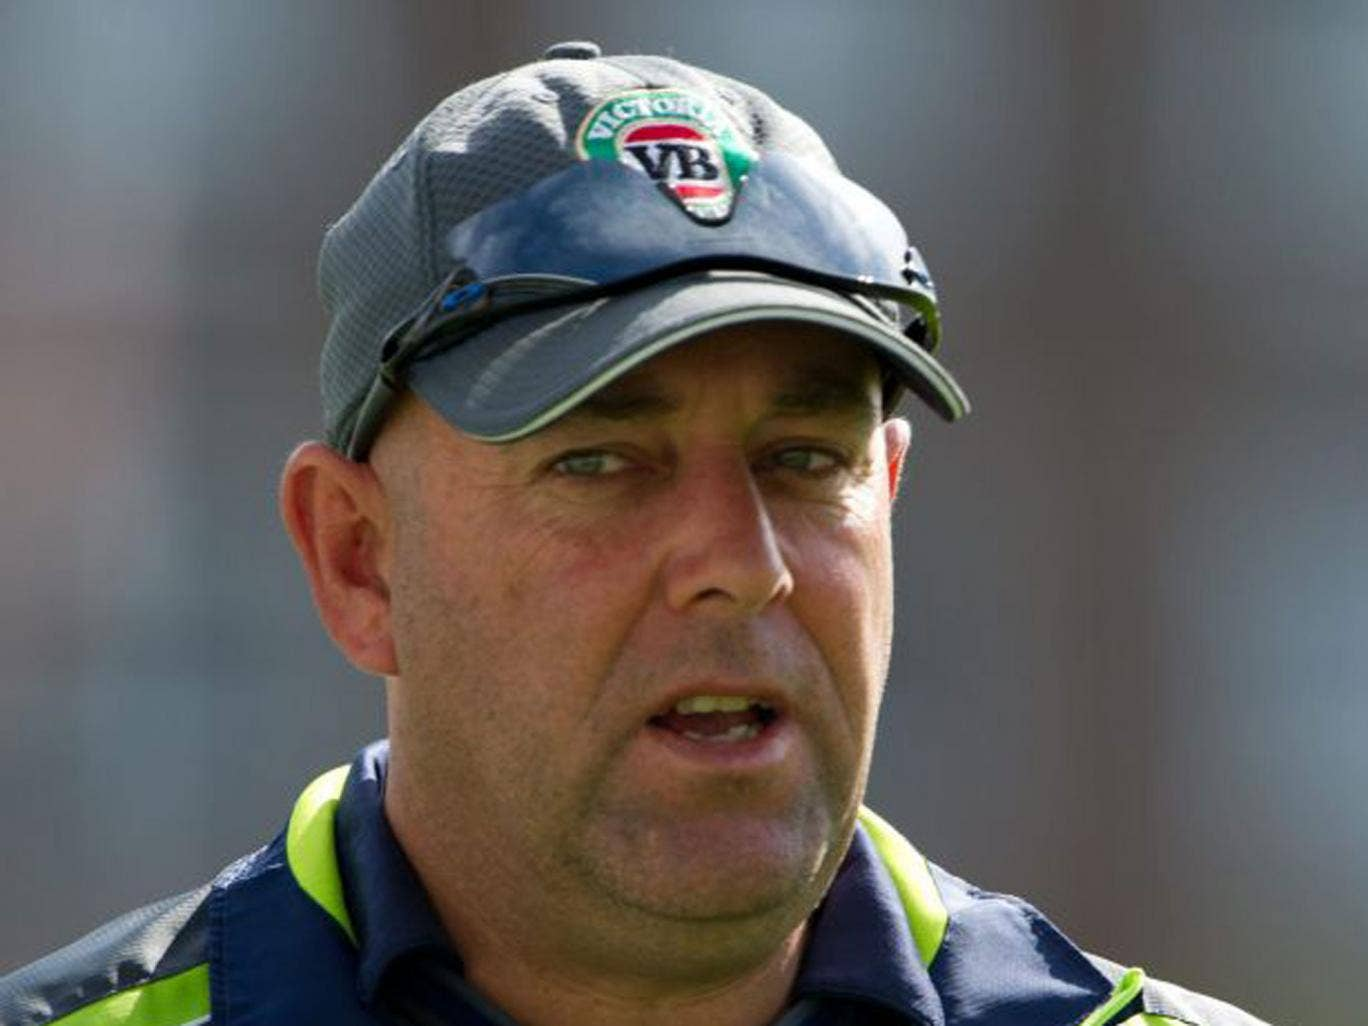 Darren Lehmann was fined 20 per cent of his match fee last night